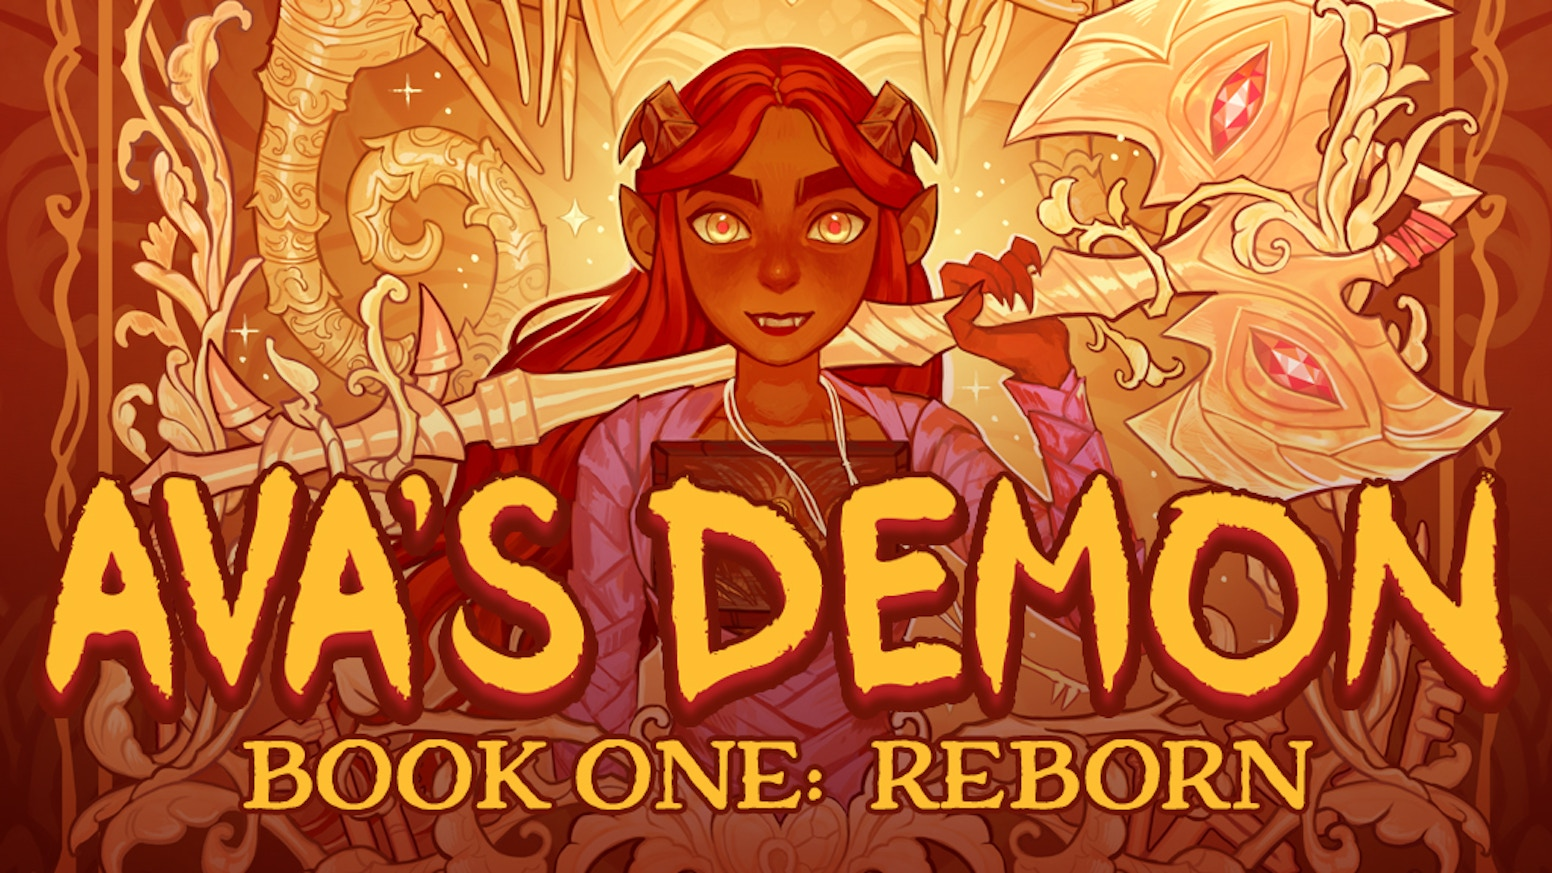 Ava's Demon is a webcomic about a girl named Ava and the demon haunting her. Help me continue her adventures!